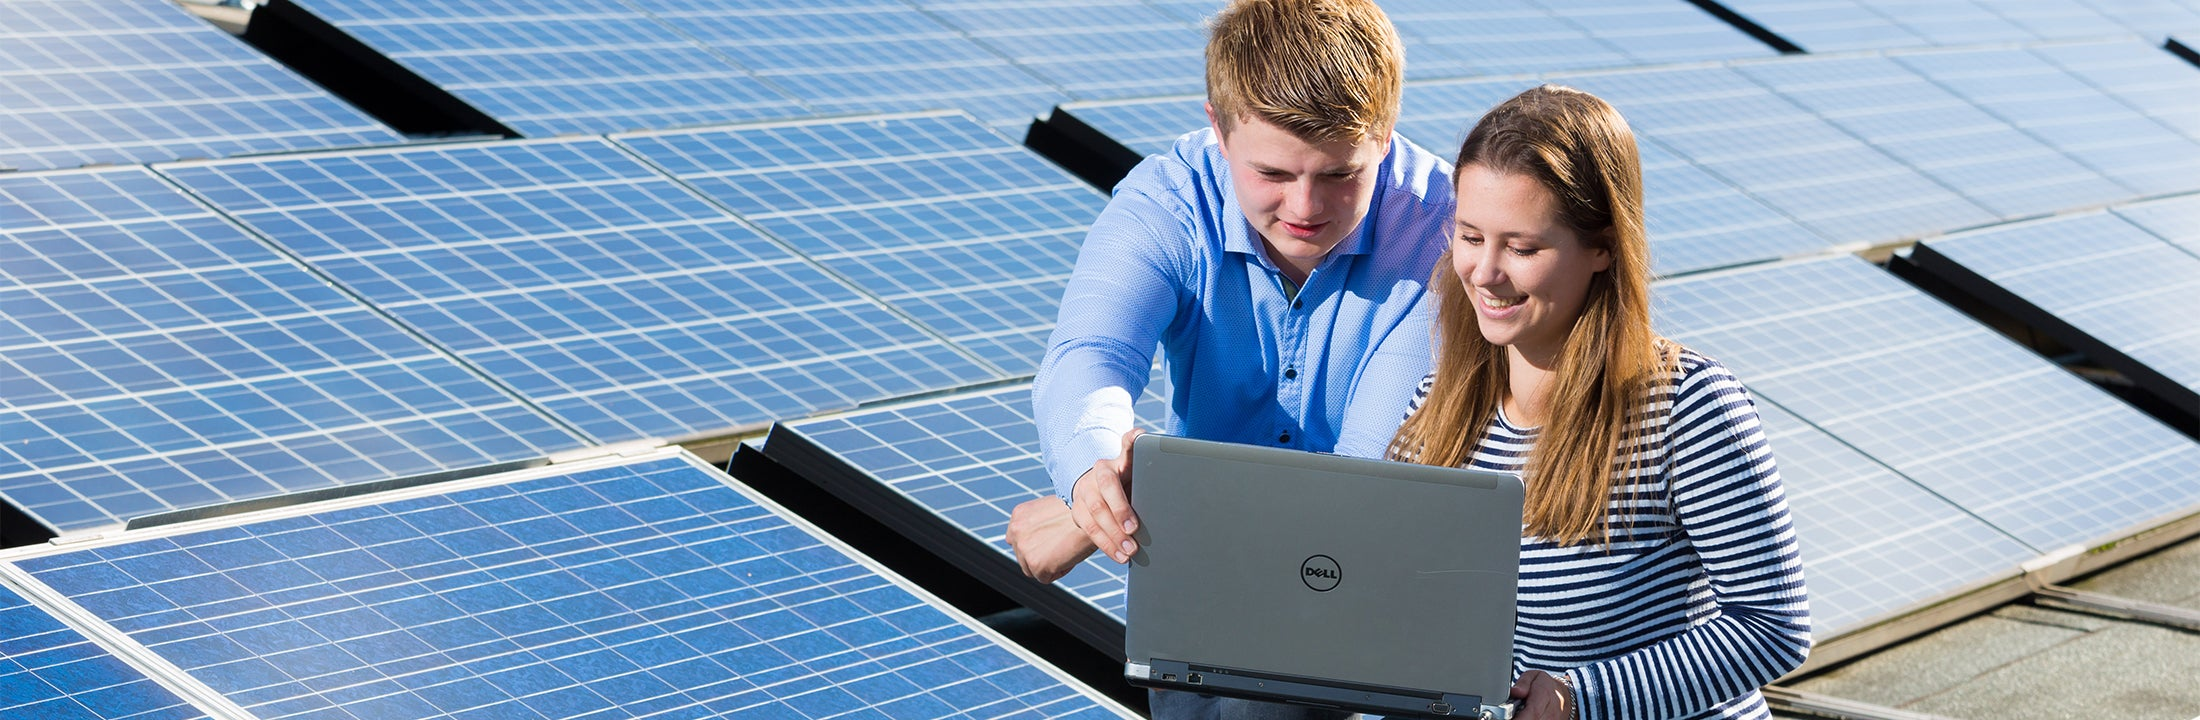 Two students surrounded by solar panels